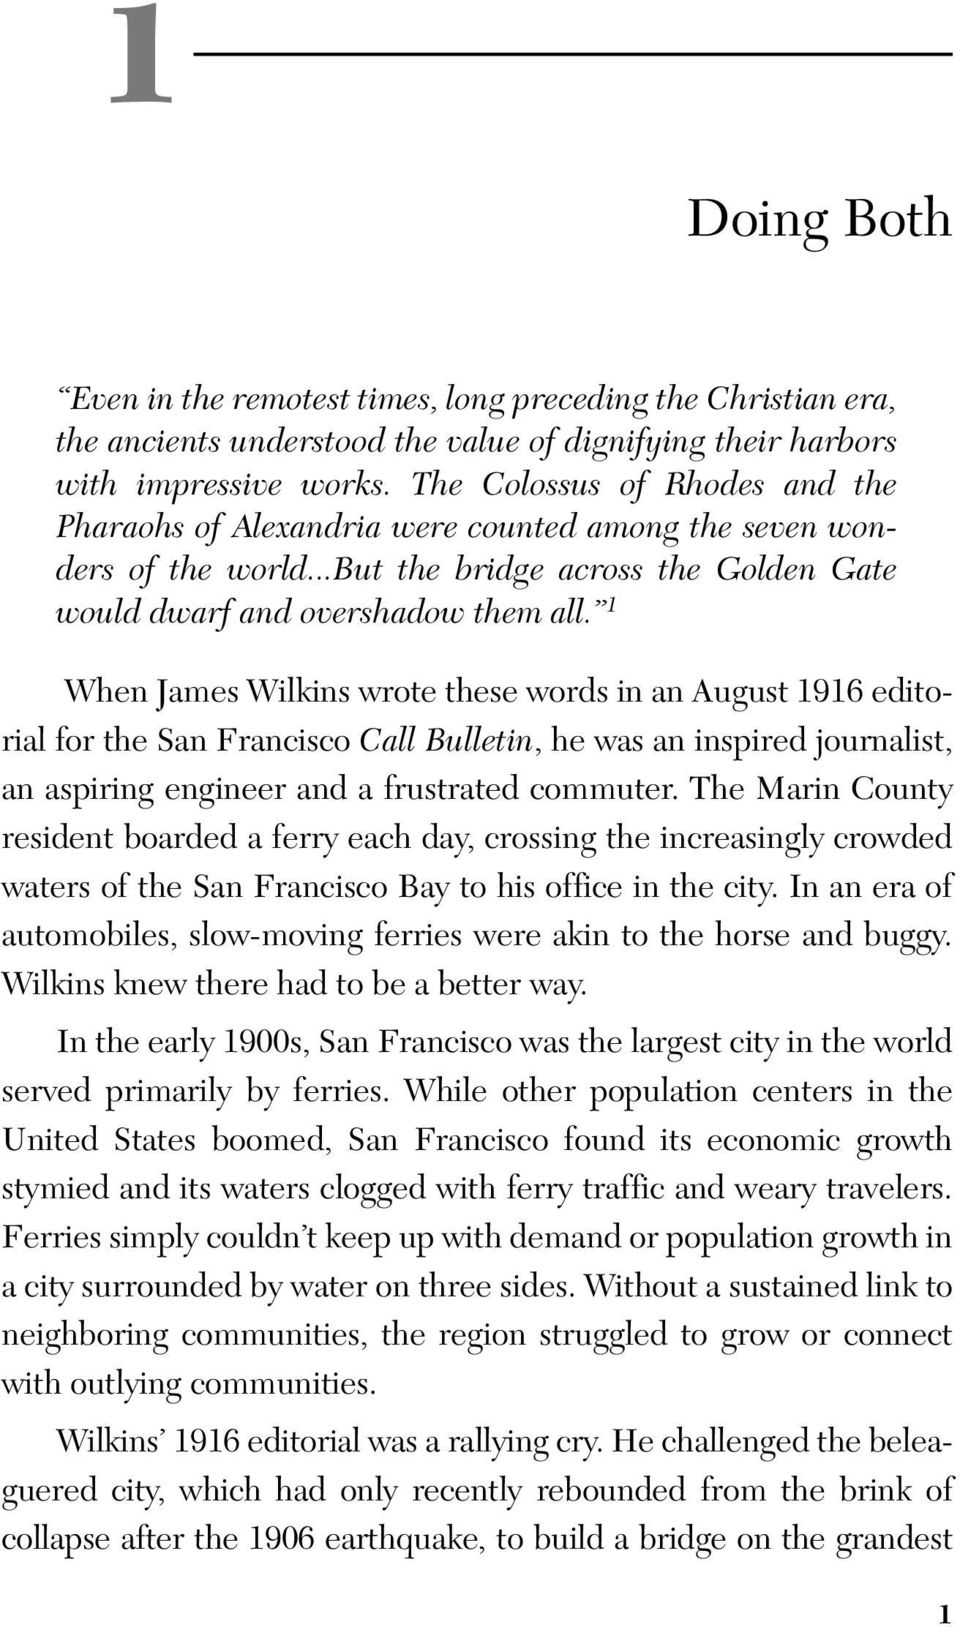 1 When James Wilkins wrote these words in an August 1916 editorial for the San Francisco Call Bulletin, he was an inspired journalist, an aspiring engineer and a frustrated commuter.